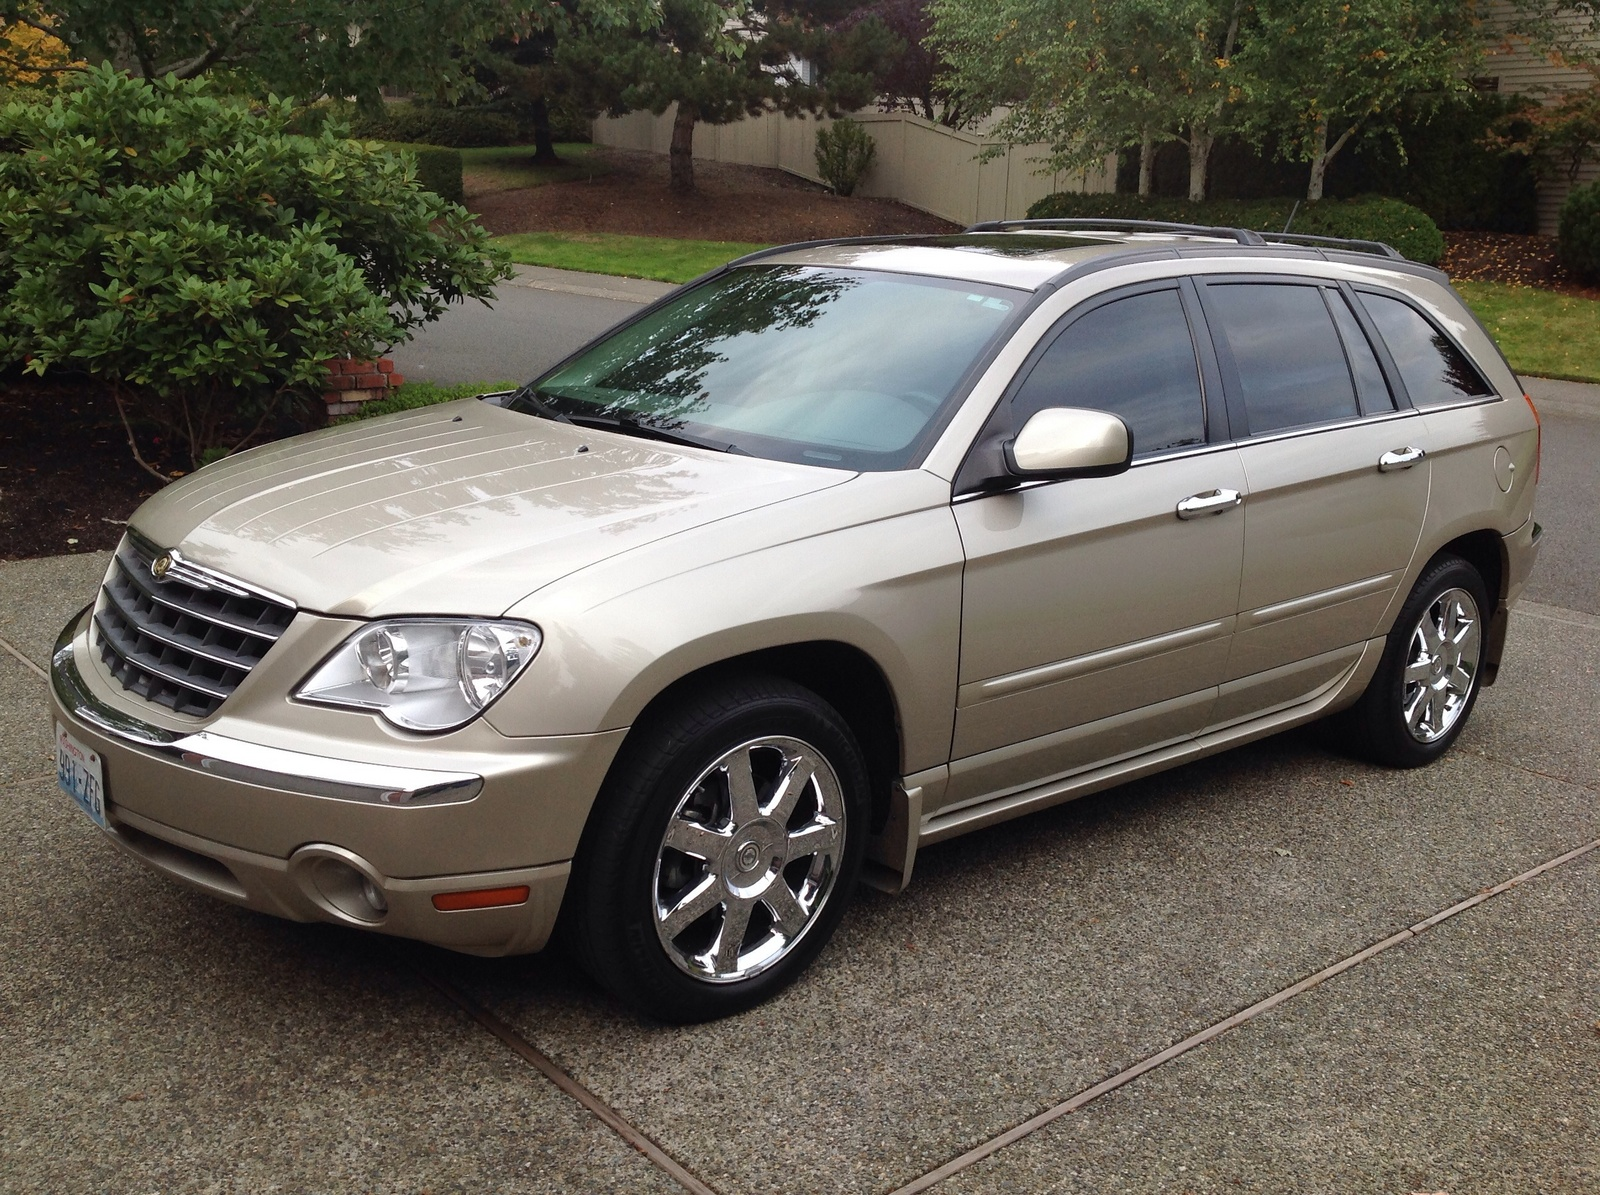 2007 Chrysler Pacifica - Pictures - CarGurus